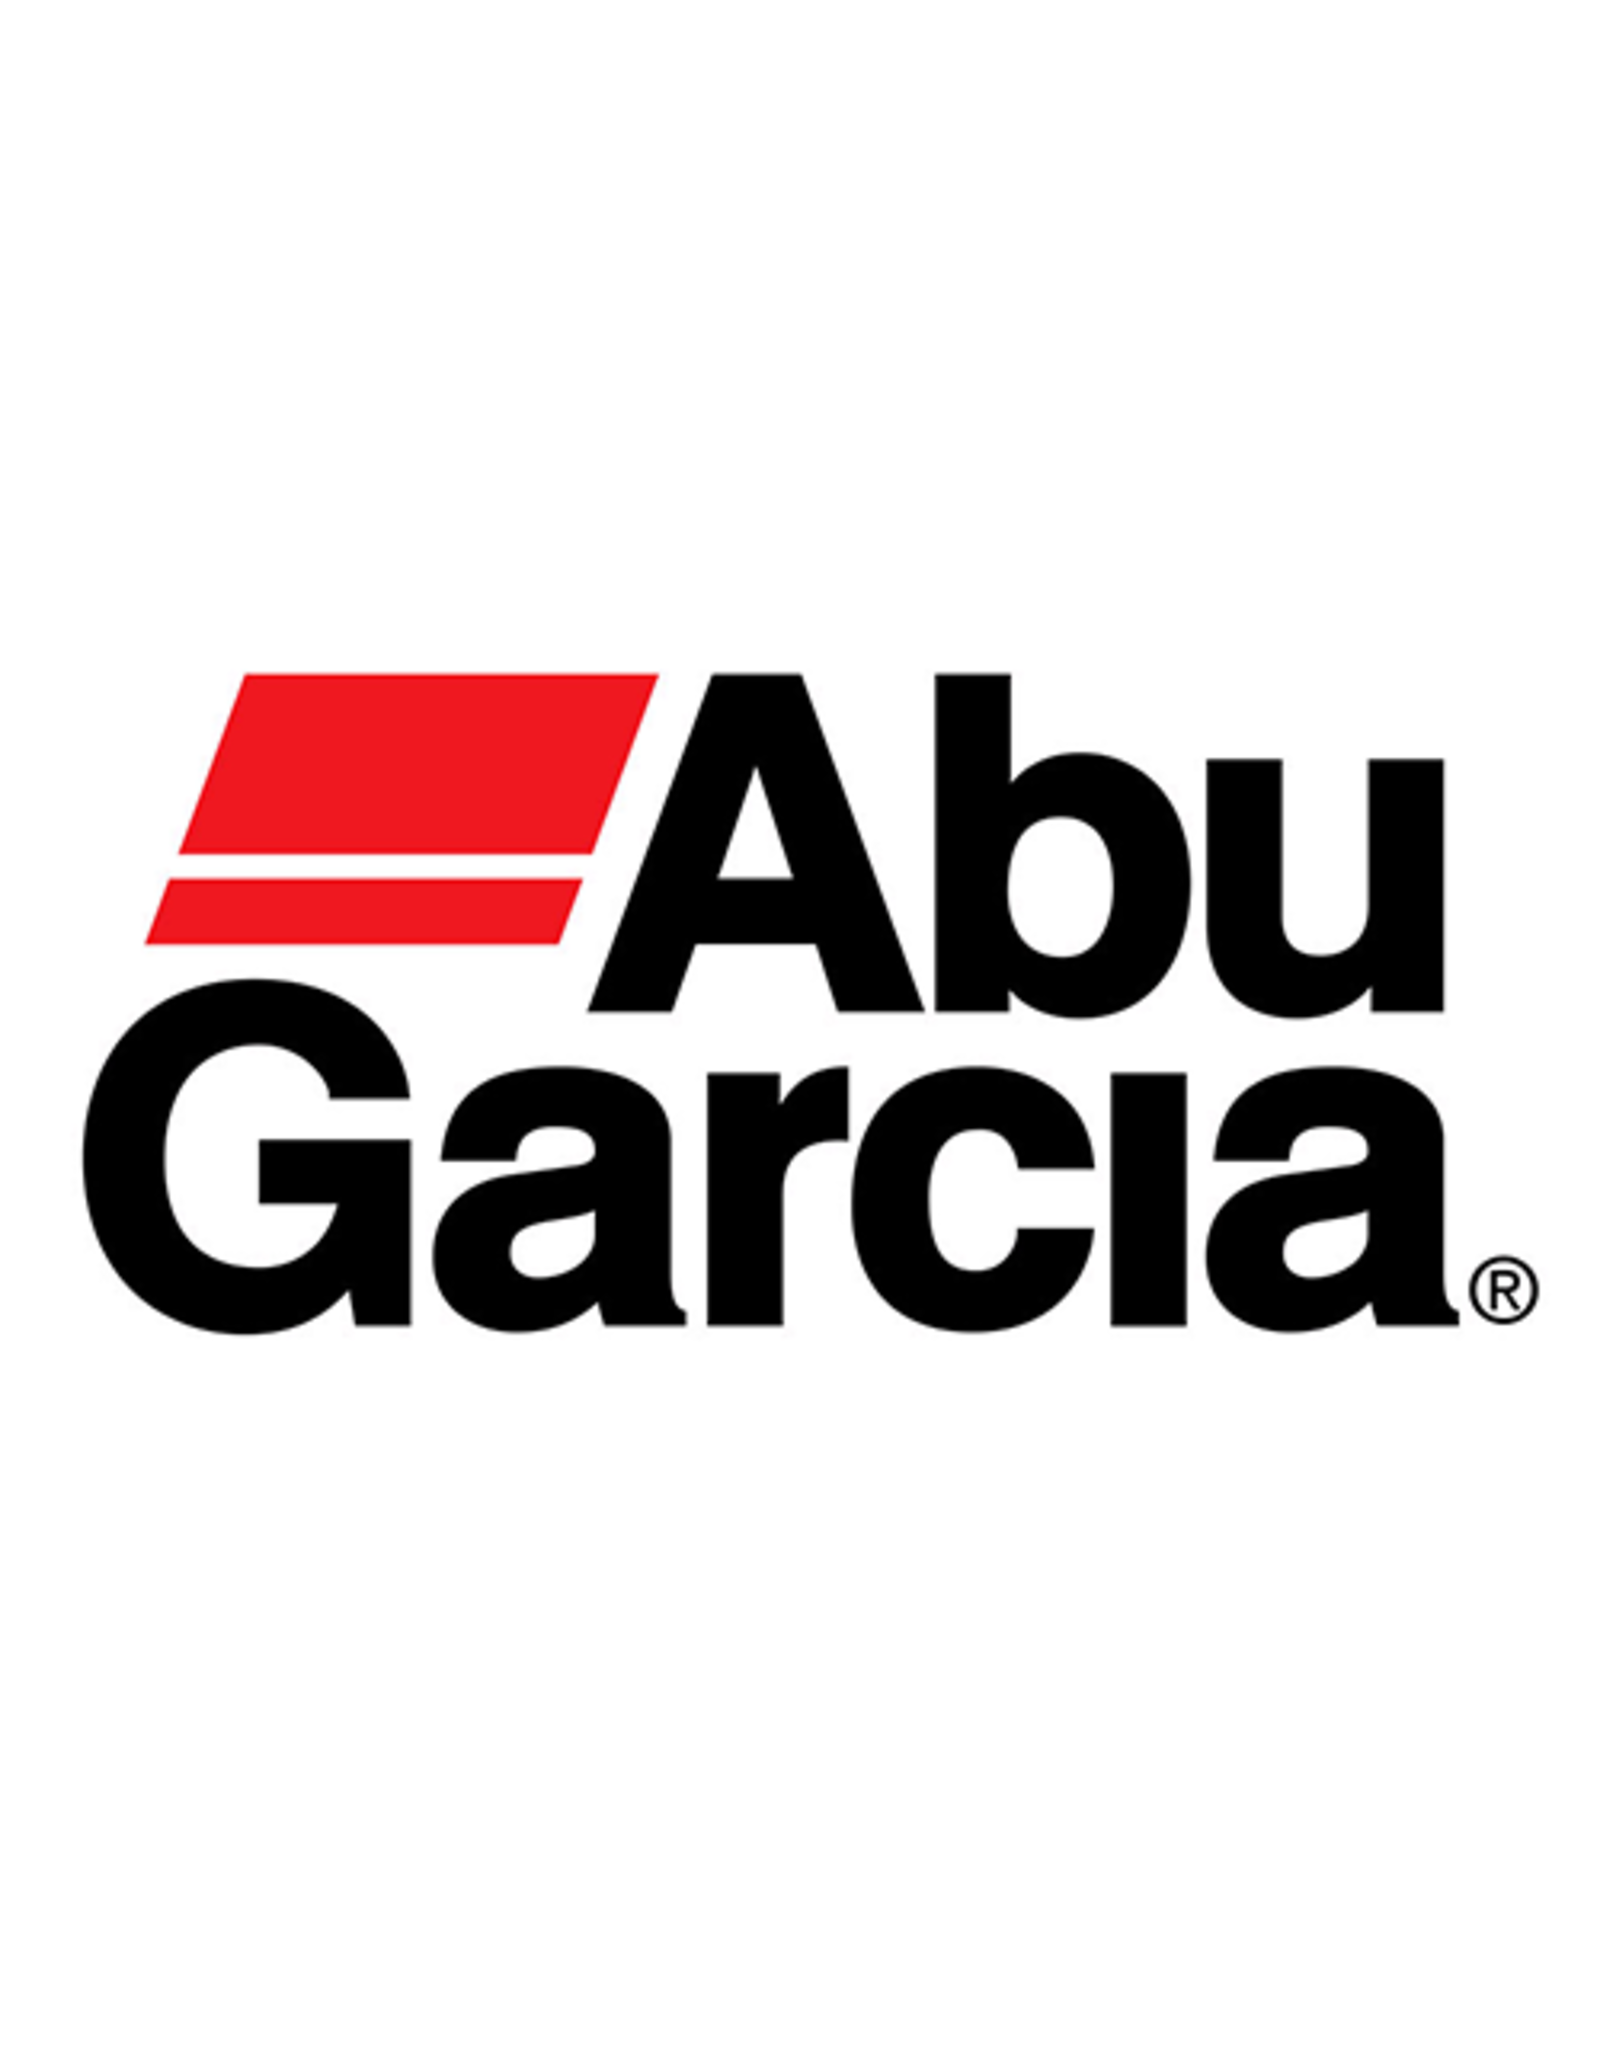 Abu Garcia CLICK BUTTON